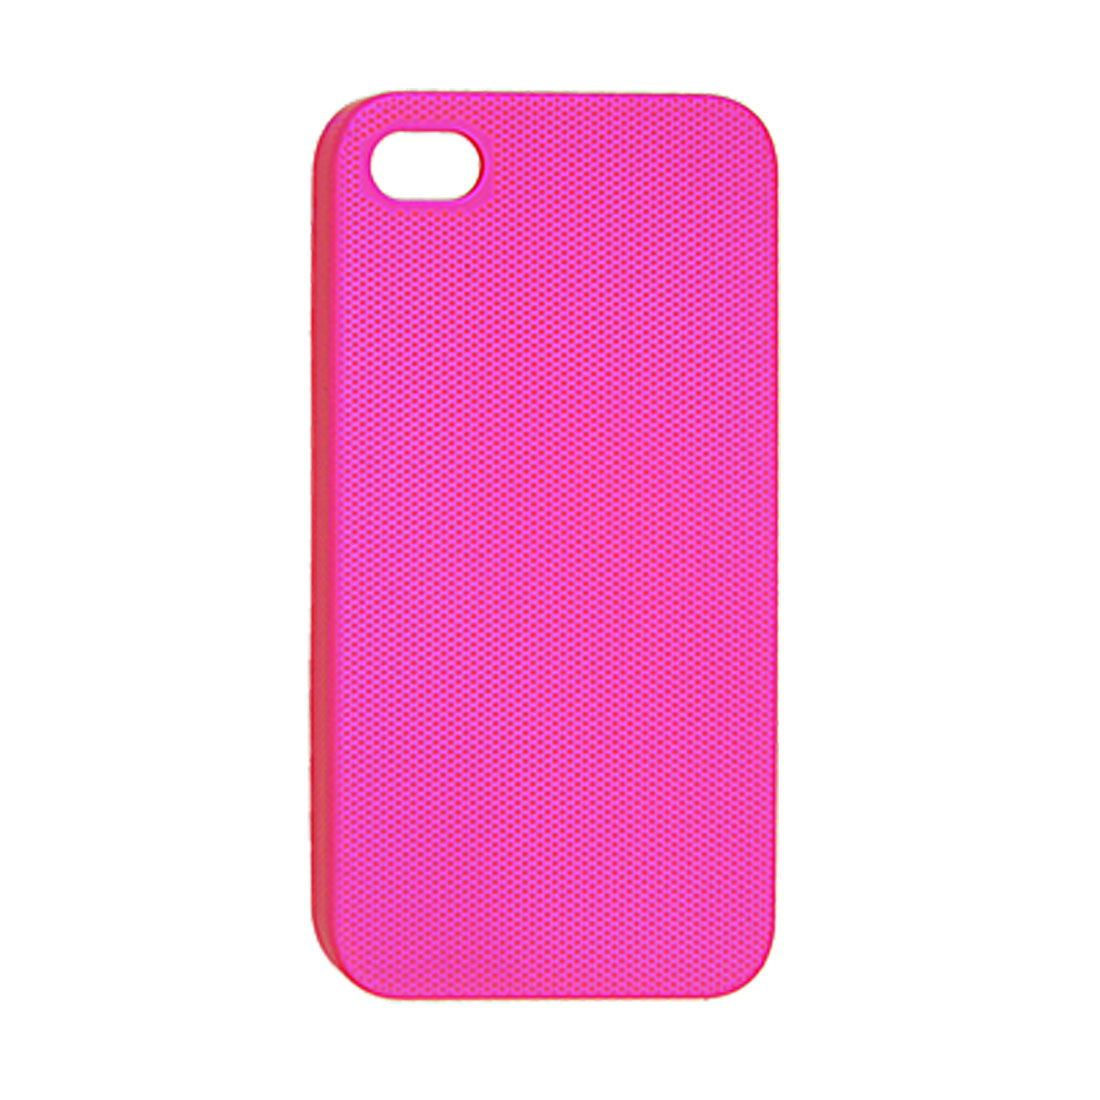 Hot Pink Dots Nonslip Plastic Back Case for iPhone 4 4G